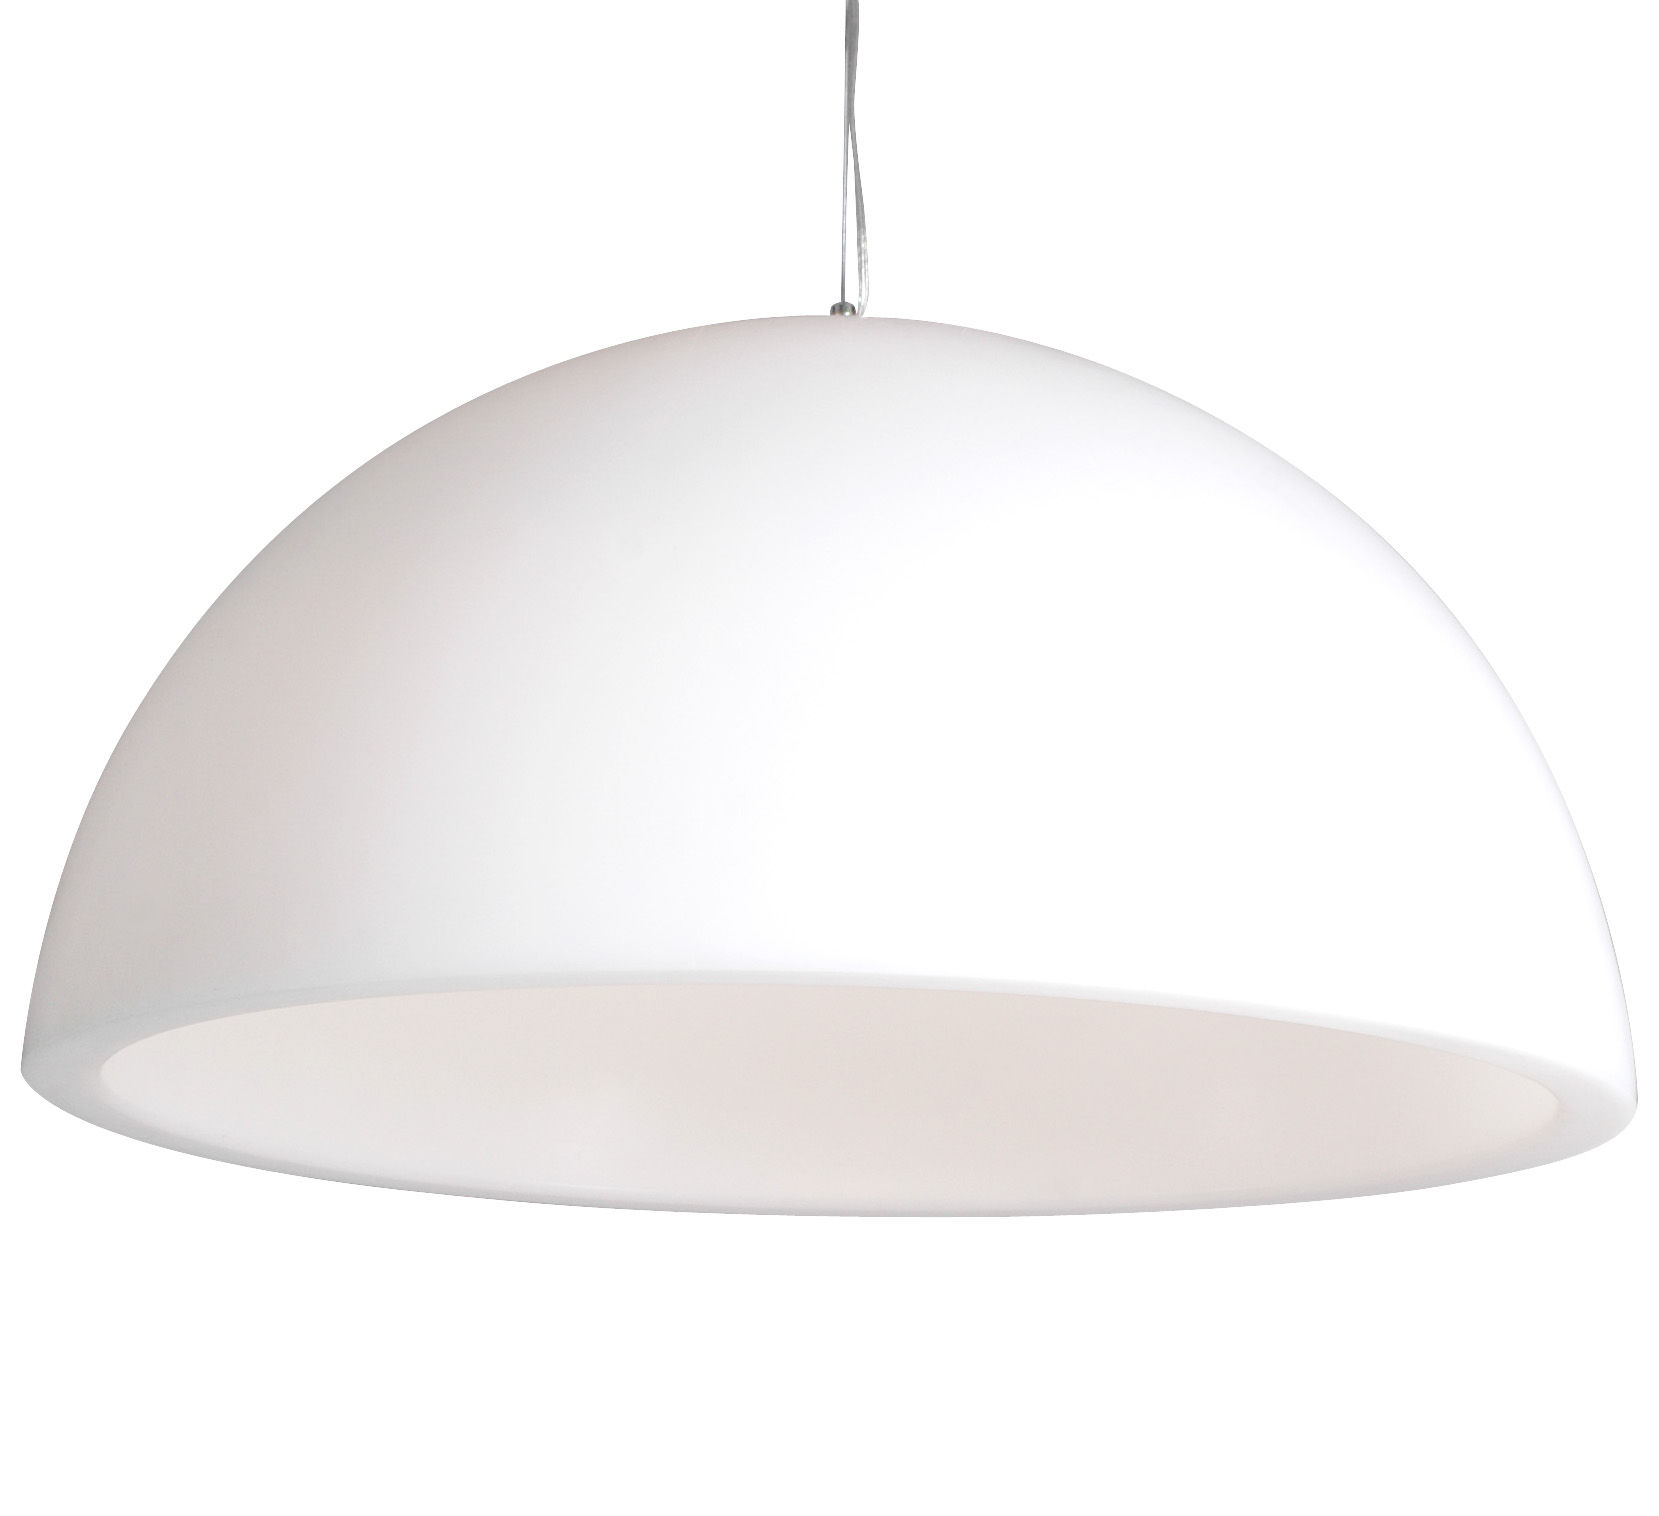 Luminaire - Suspensions - Suspension Cupole Ø 200 cm / Version mate - Slide - Blanc - Polyéthylène